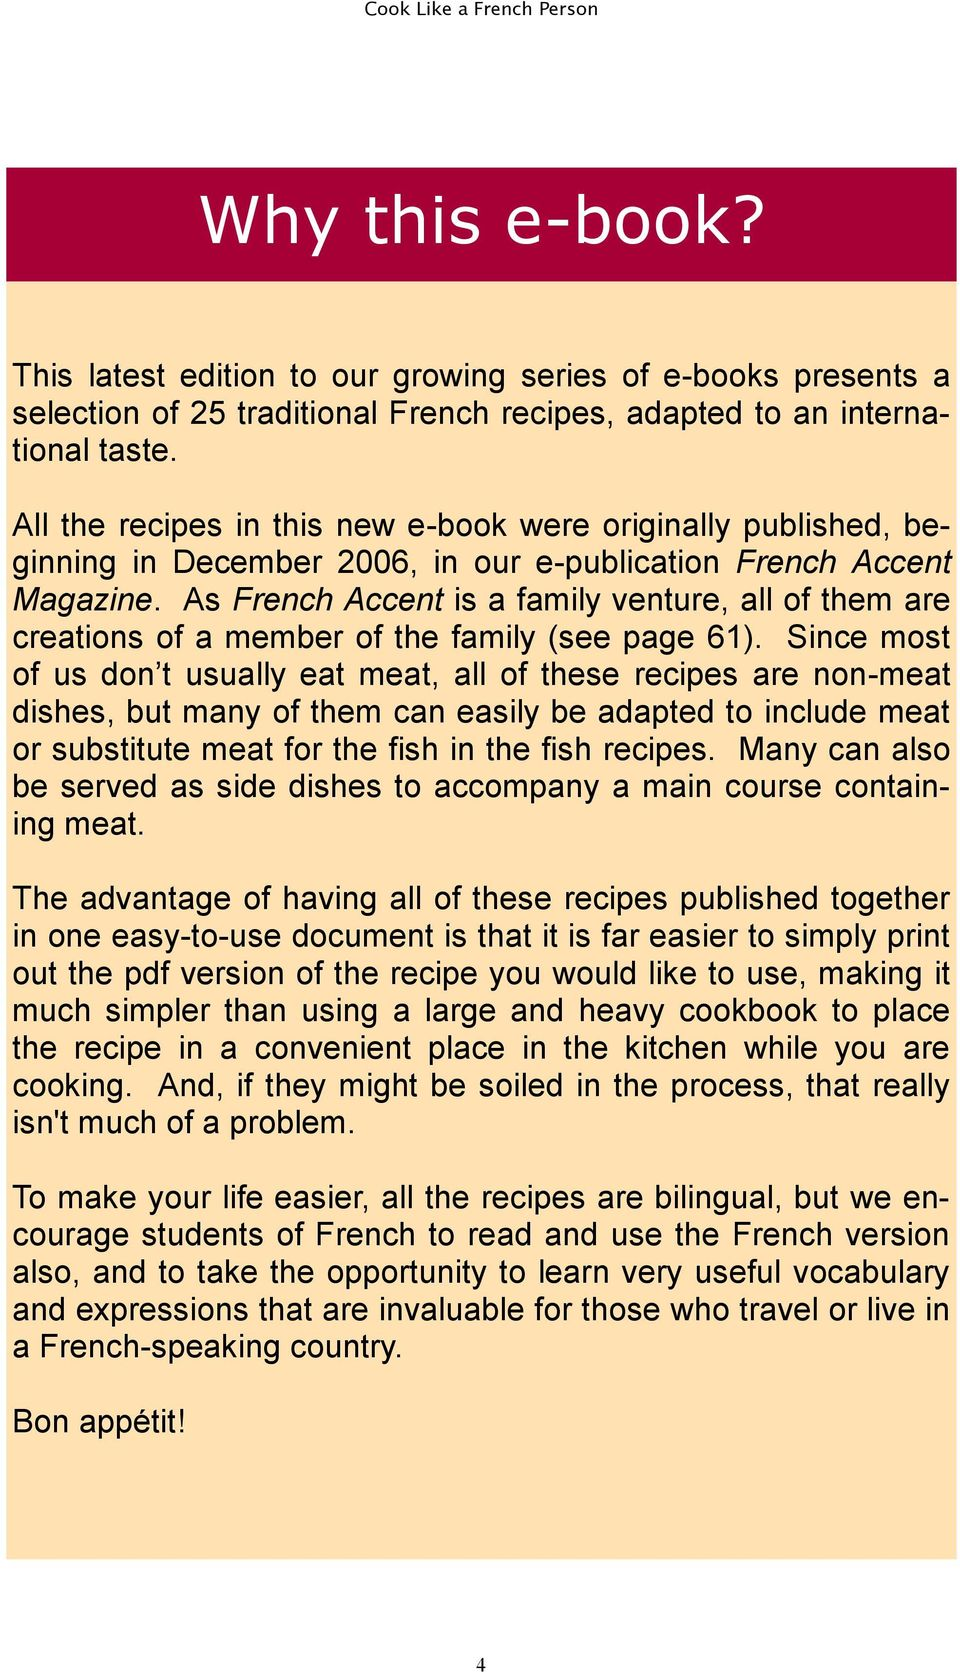 As French Accent is a family venture, all of them are creations of a member of the family (see page 61).